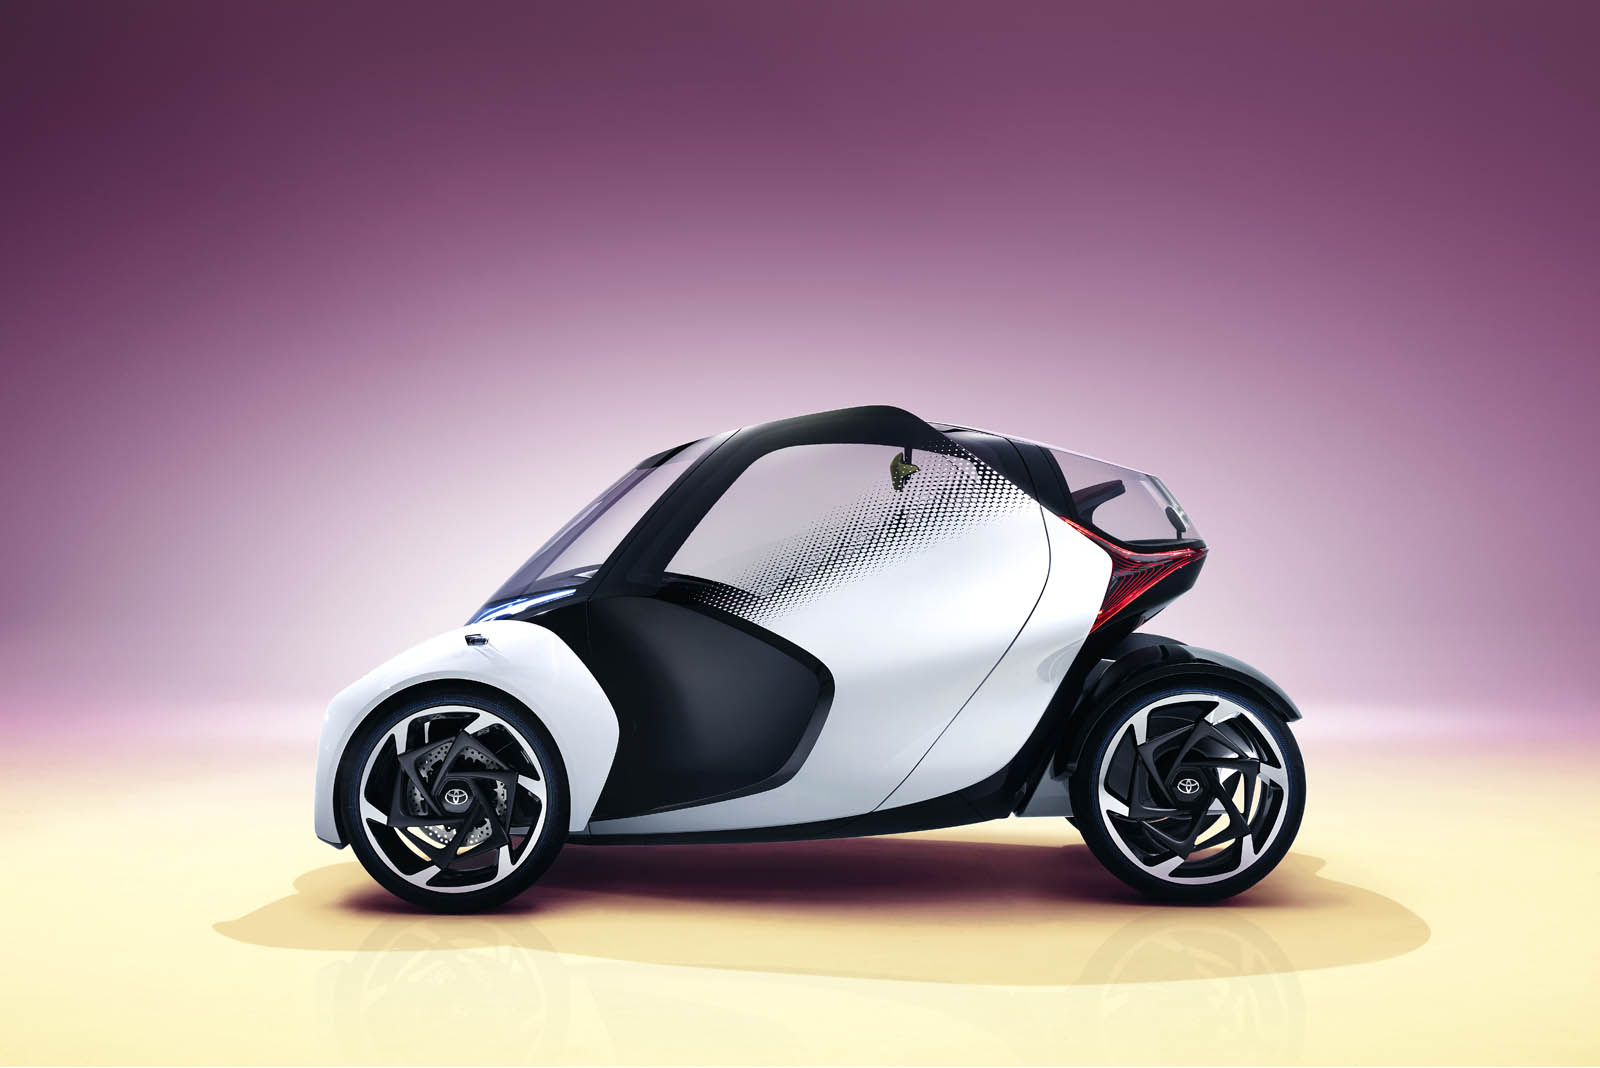 2017_Toyota_Concept_i-Tril_Static_10 copy